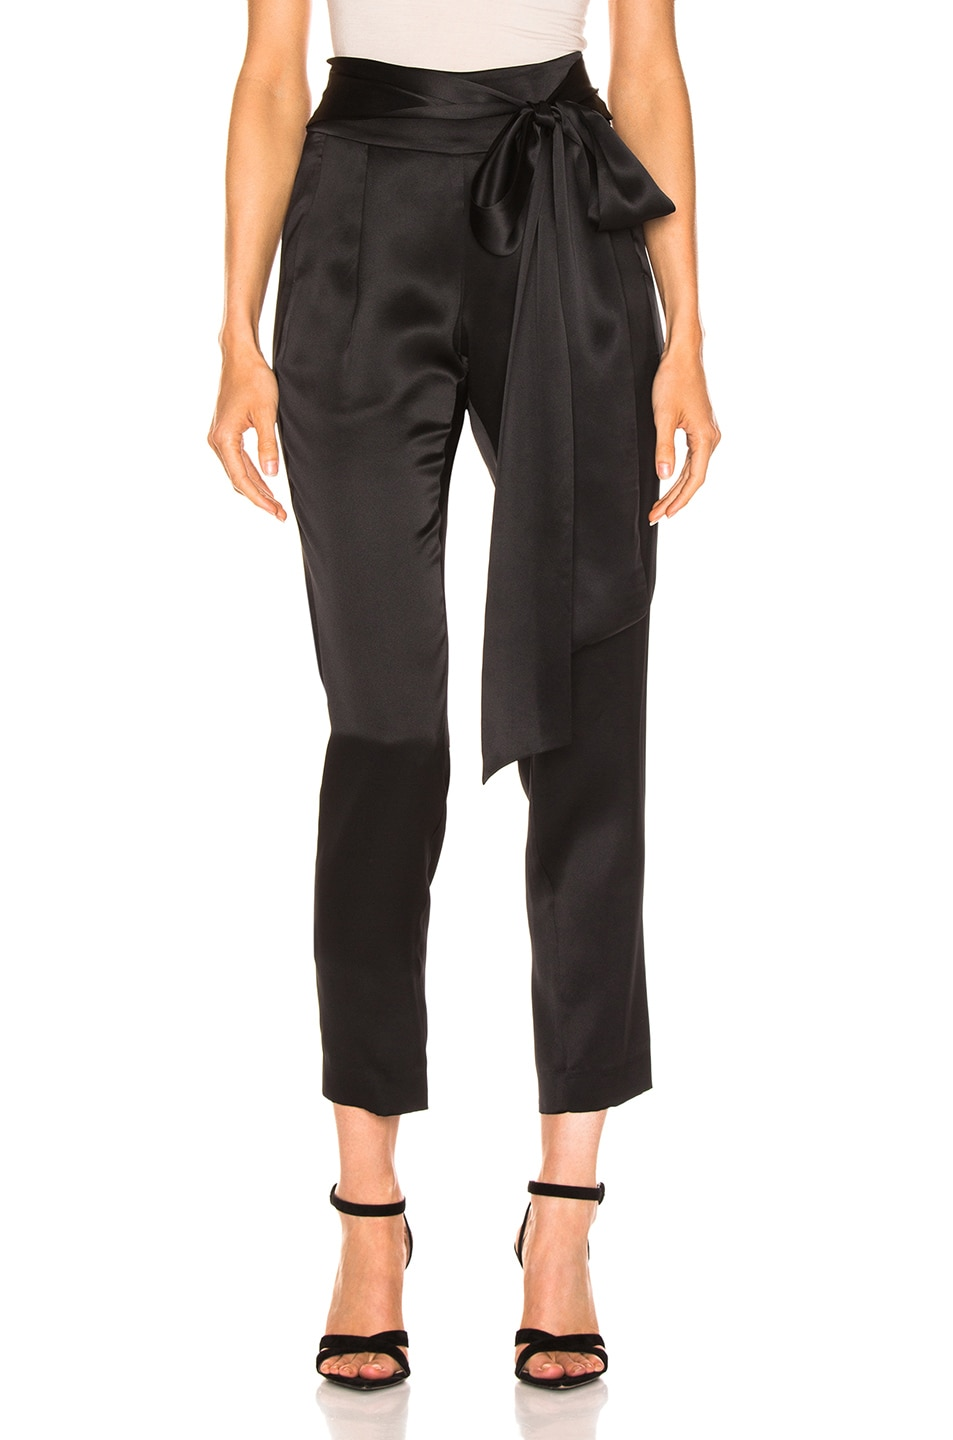 Image 1 of Michelle Mason Pleat Pant With Tie in Black